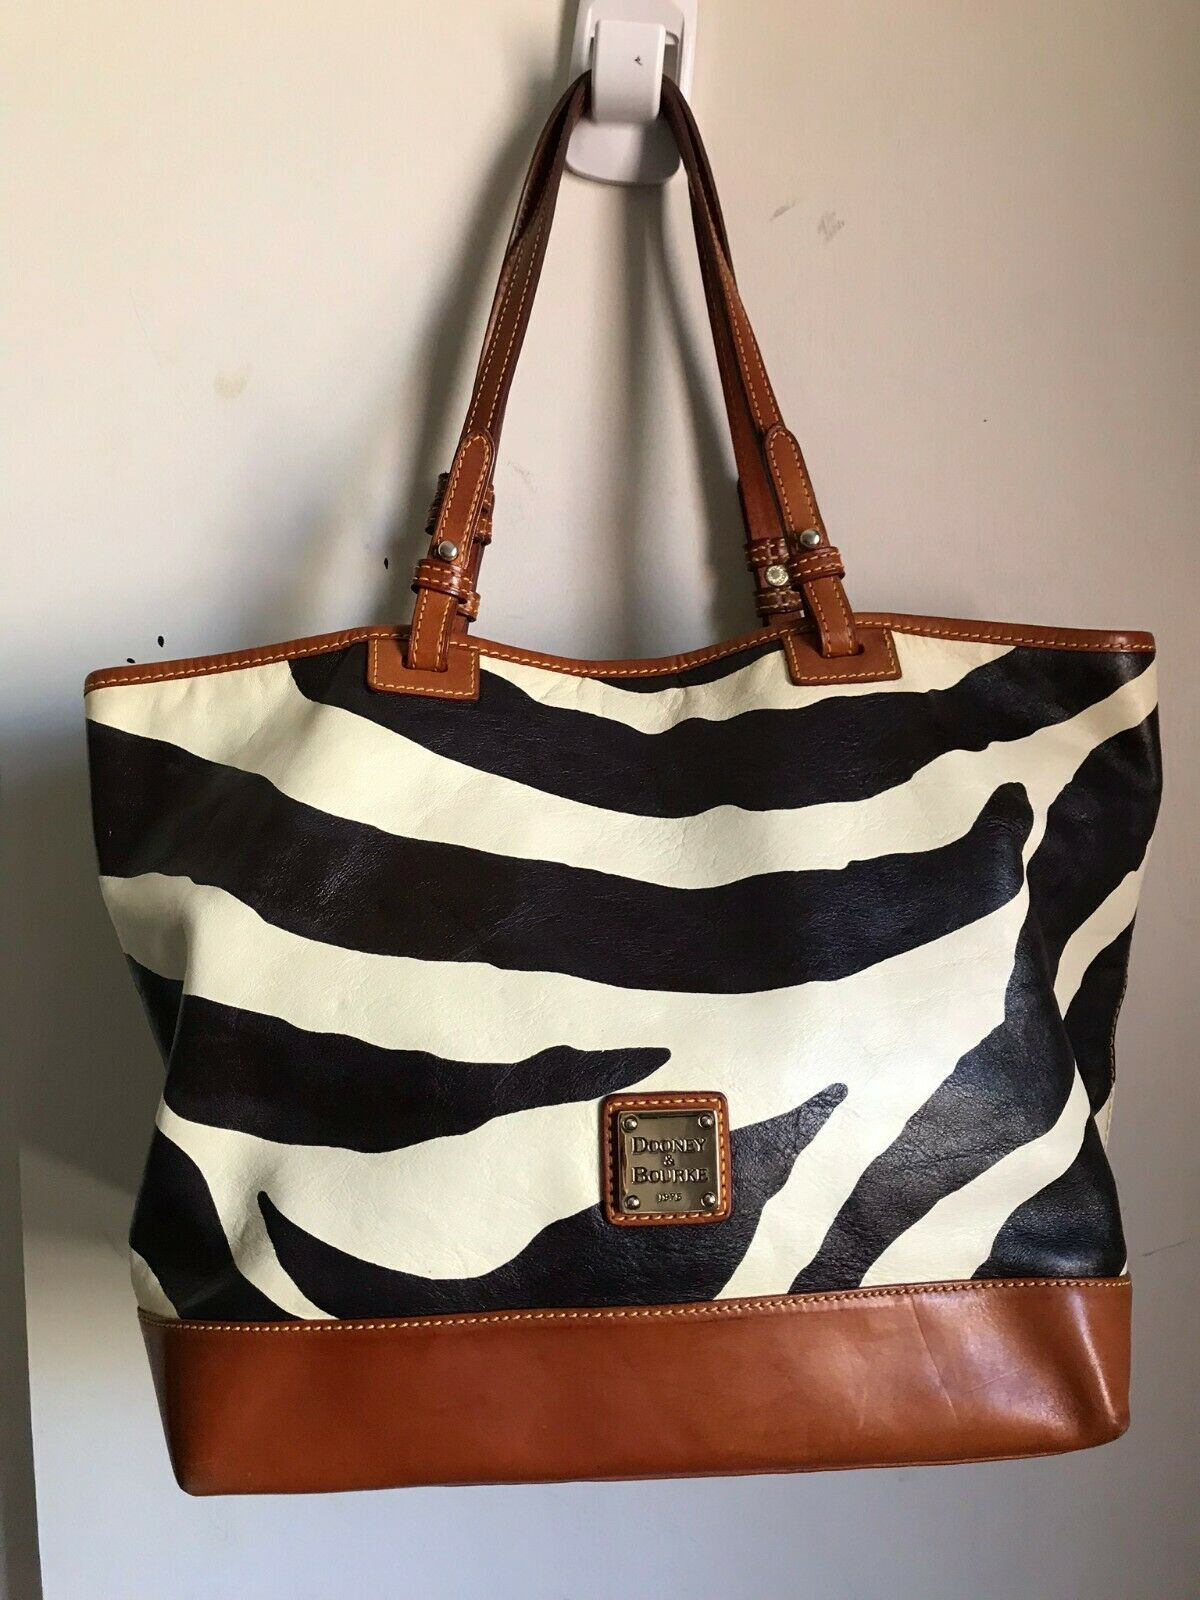 Dooney & Bourke Large Leather Tote Crossbody Bag